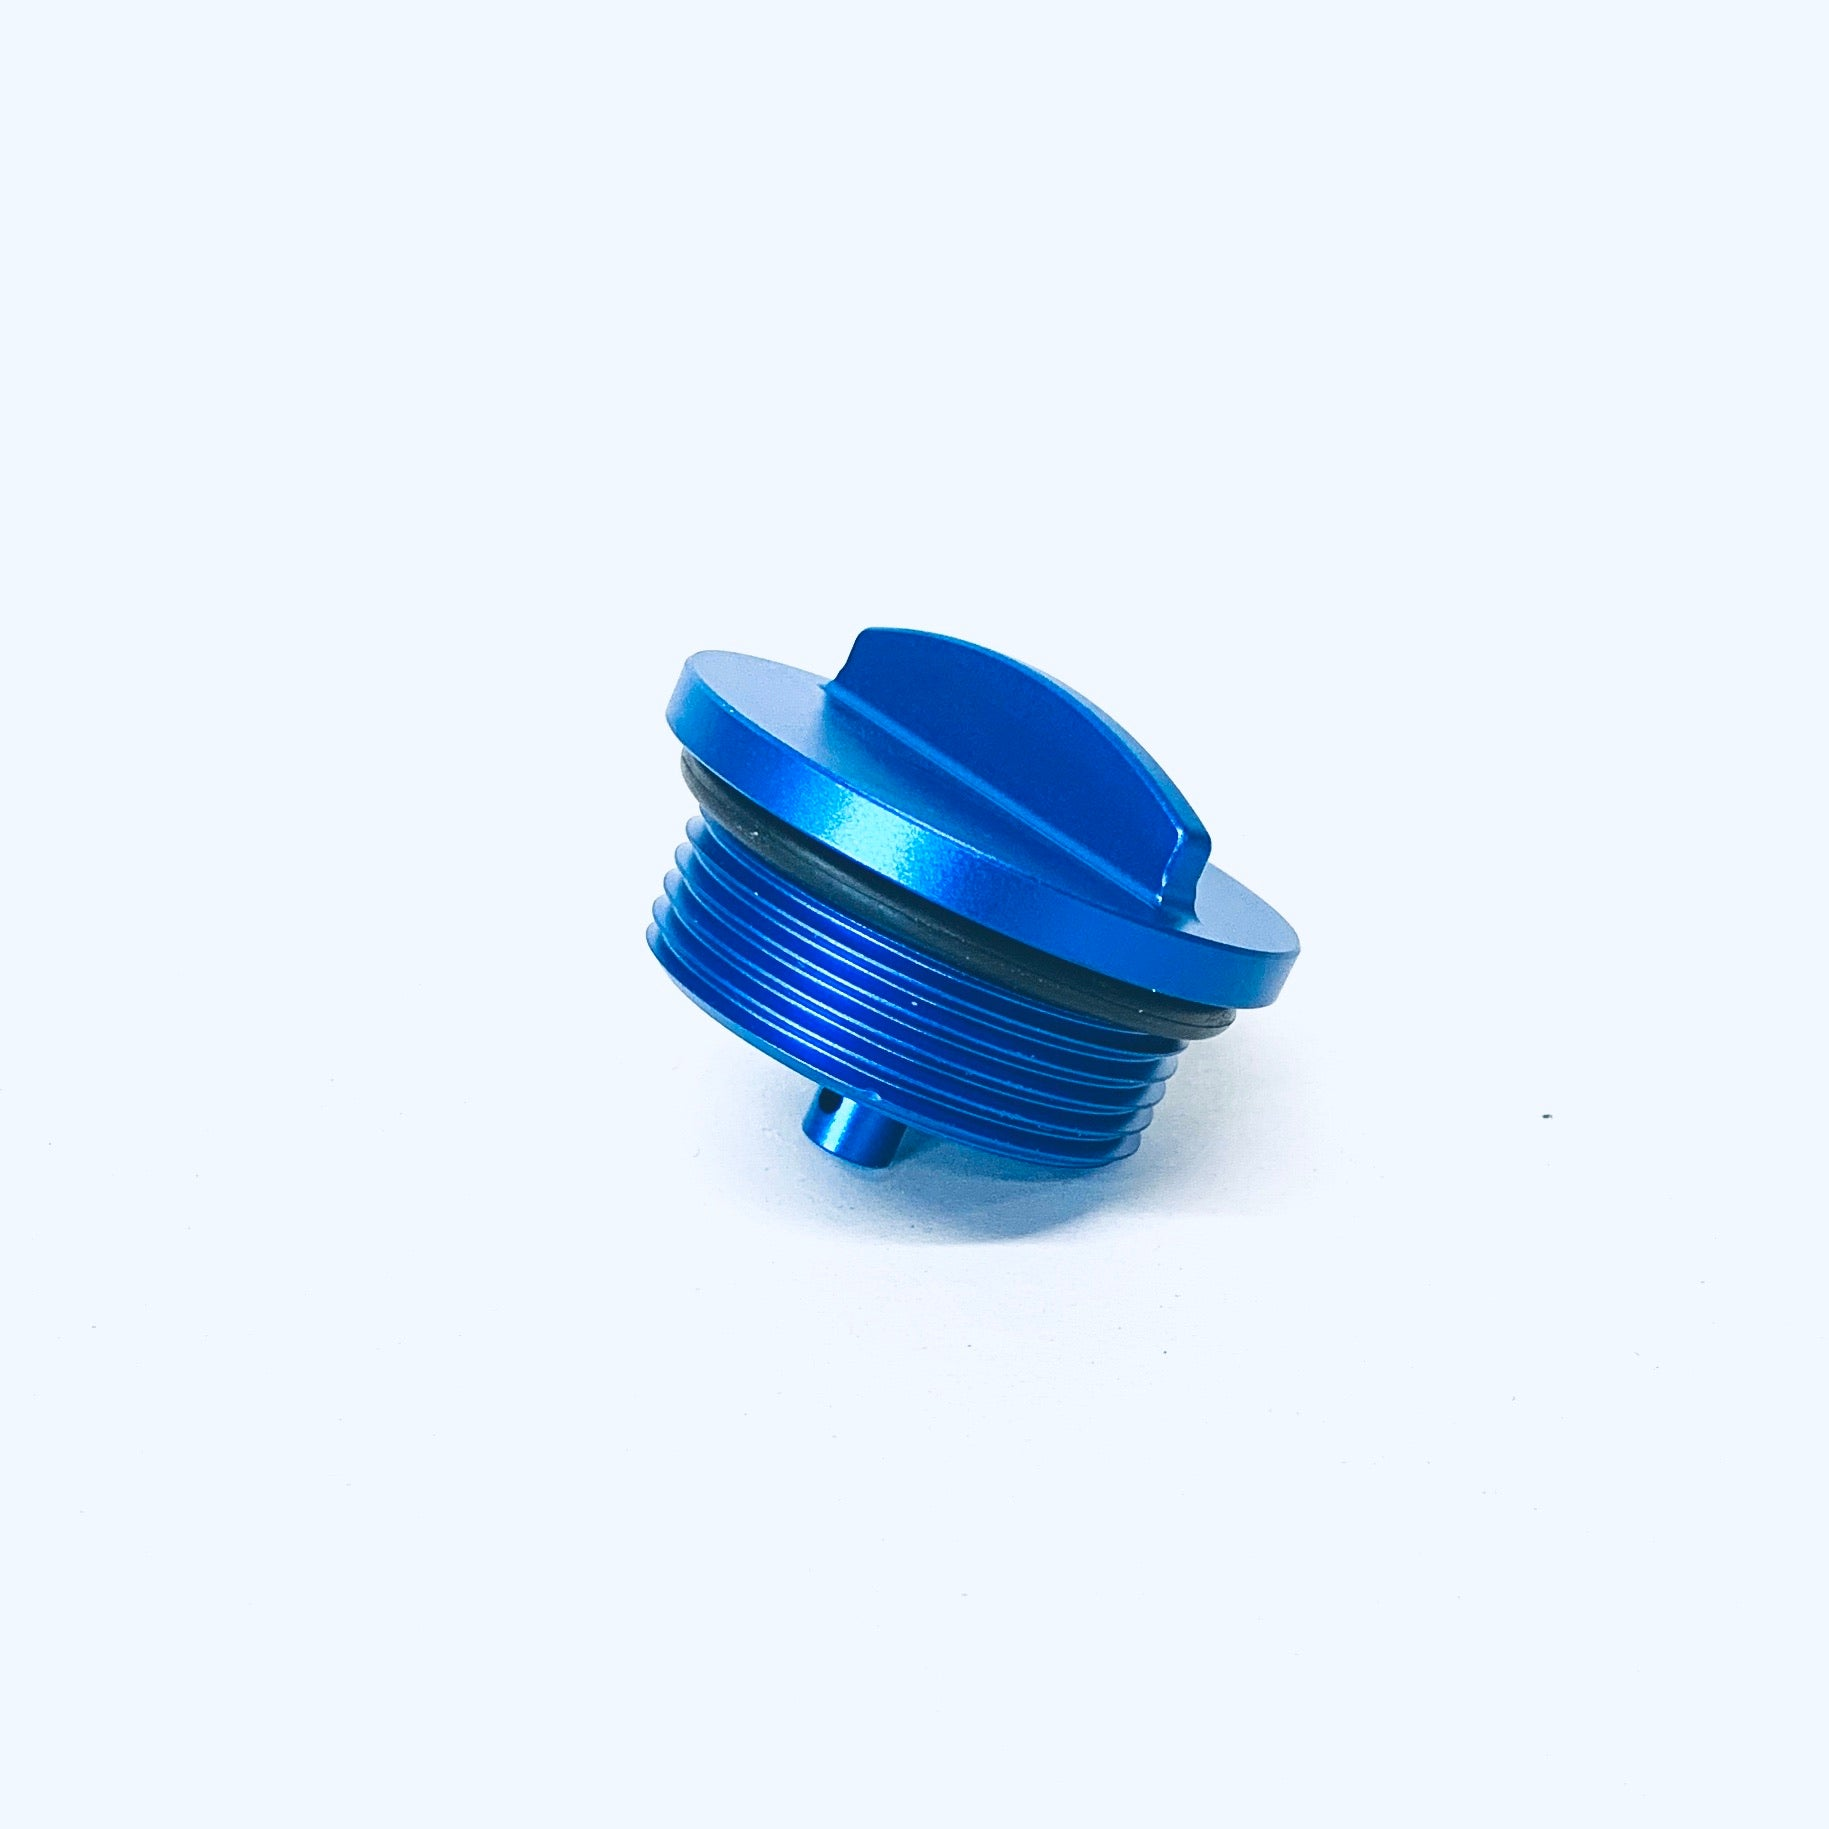 BLUE ANODIZED WINDSHIELD WASHER FILL COVER